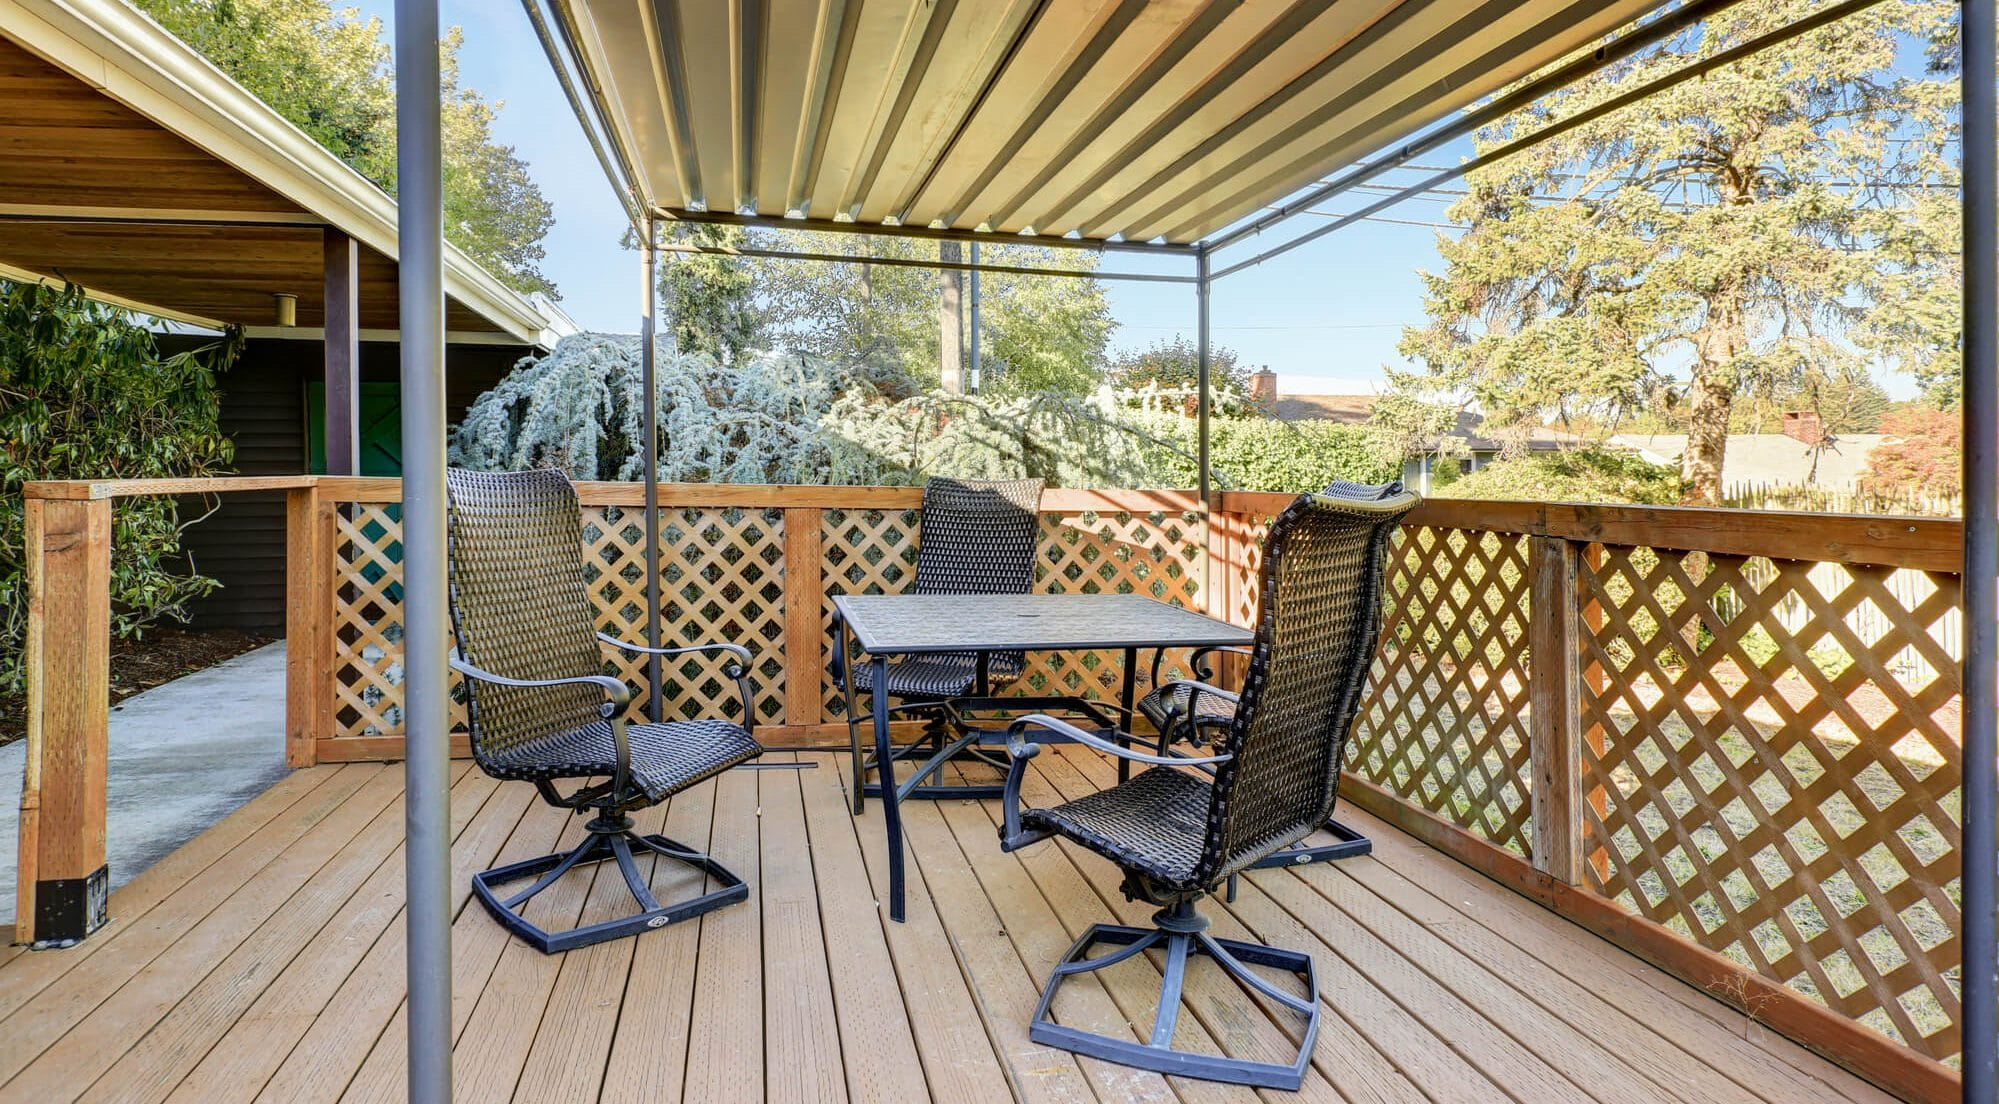 How tall should a patio cover be - Big Easy Fences